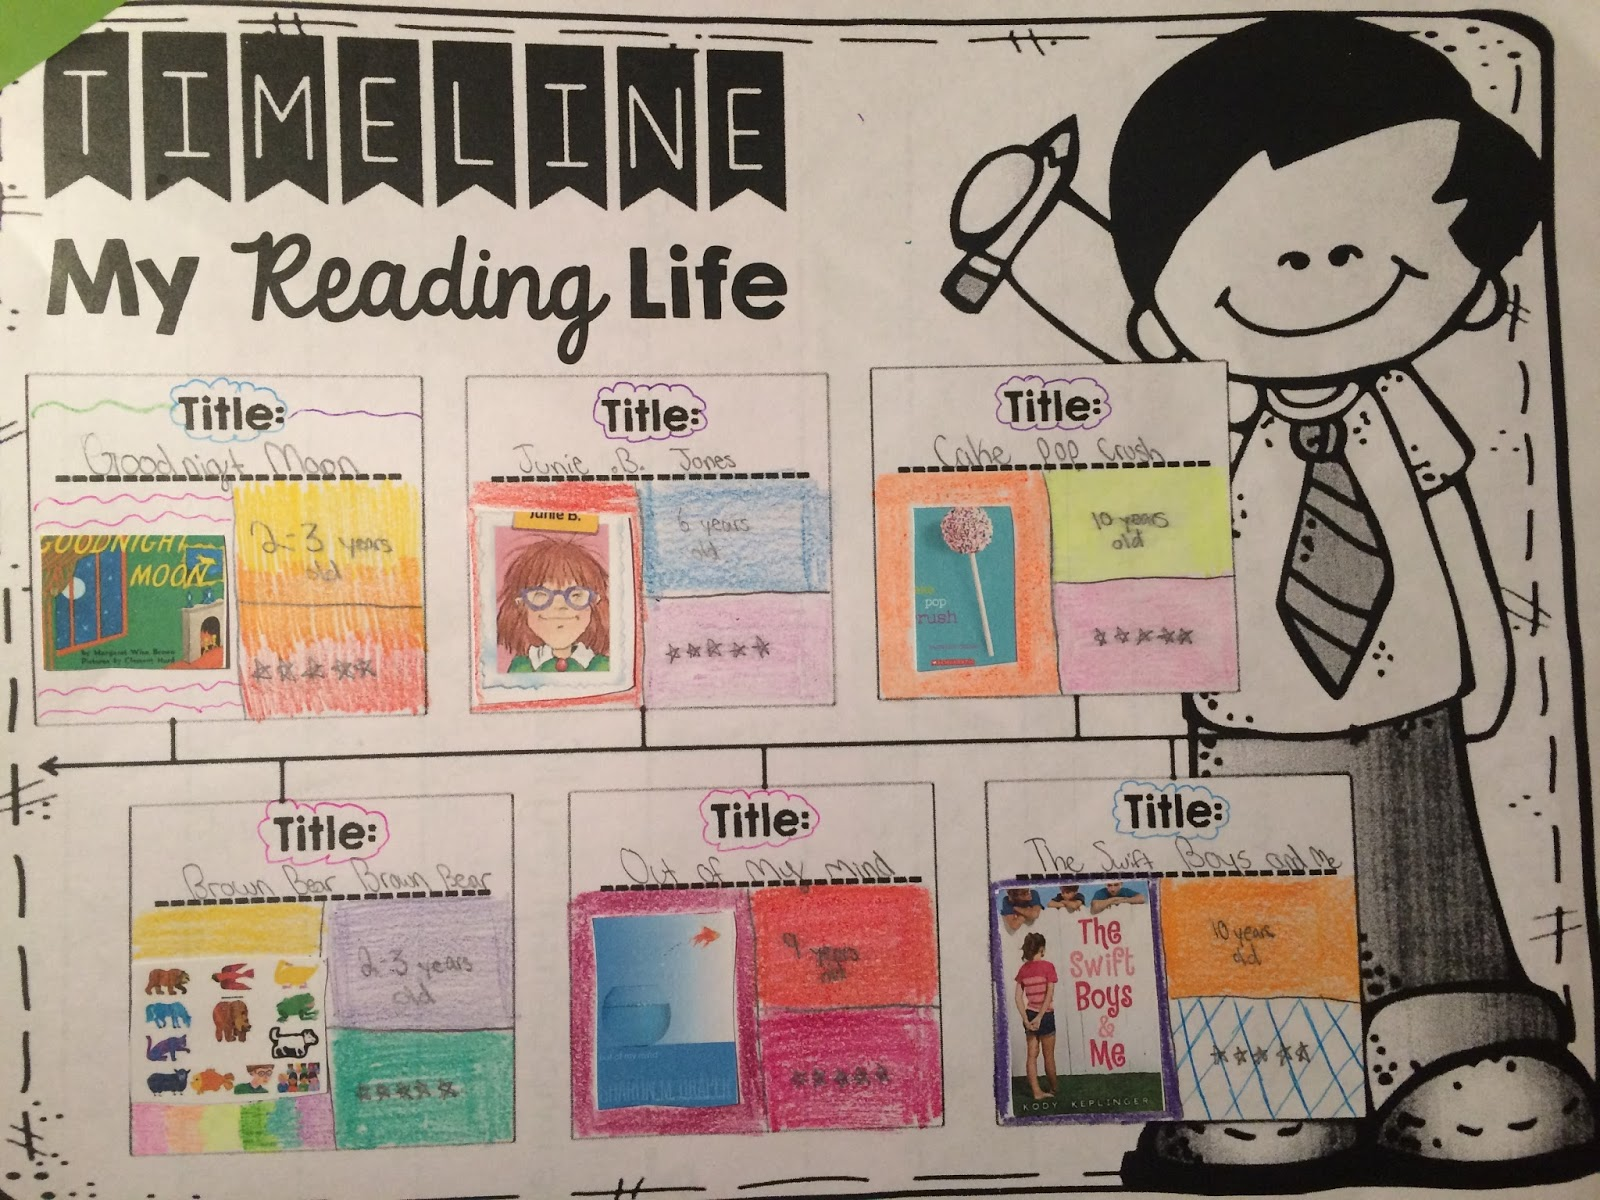 Reading Life Timeline Assignment | My Shoestring Life